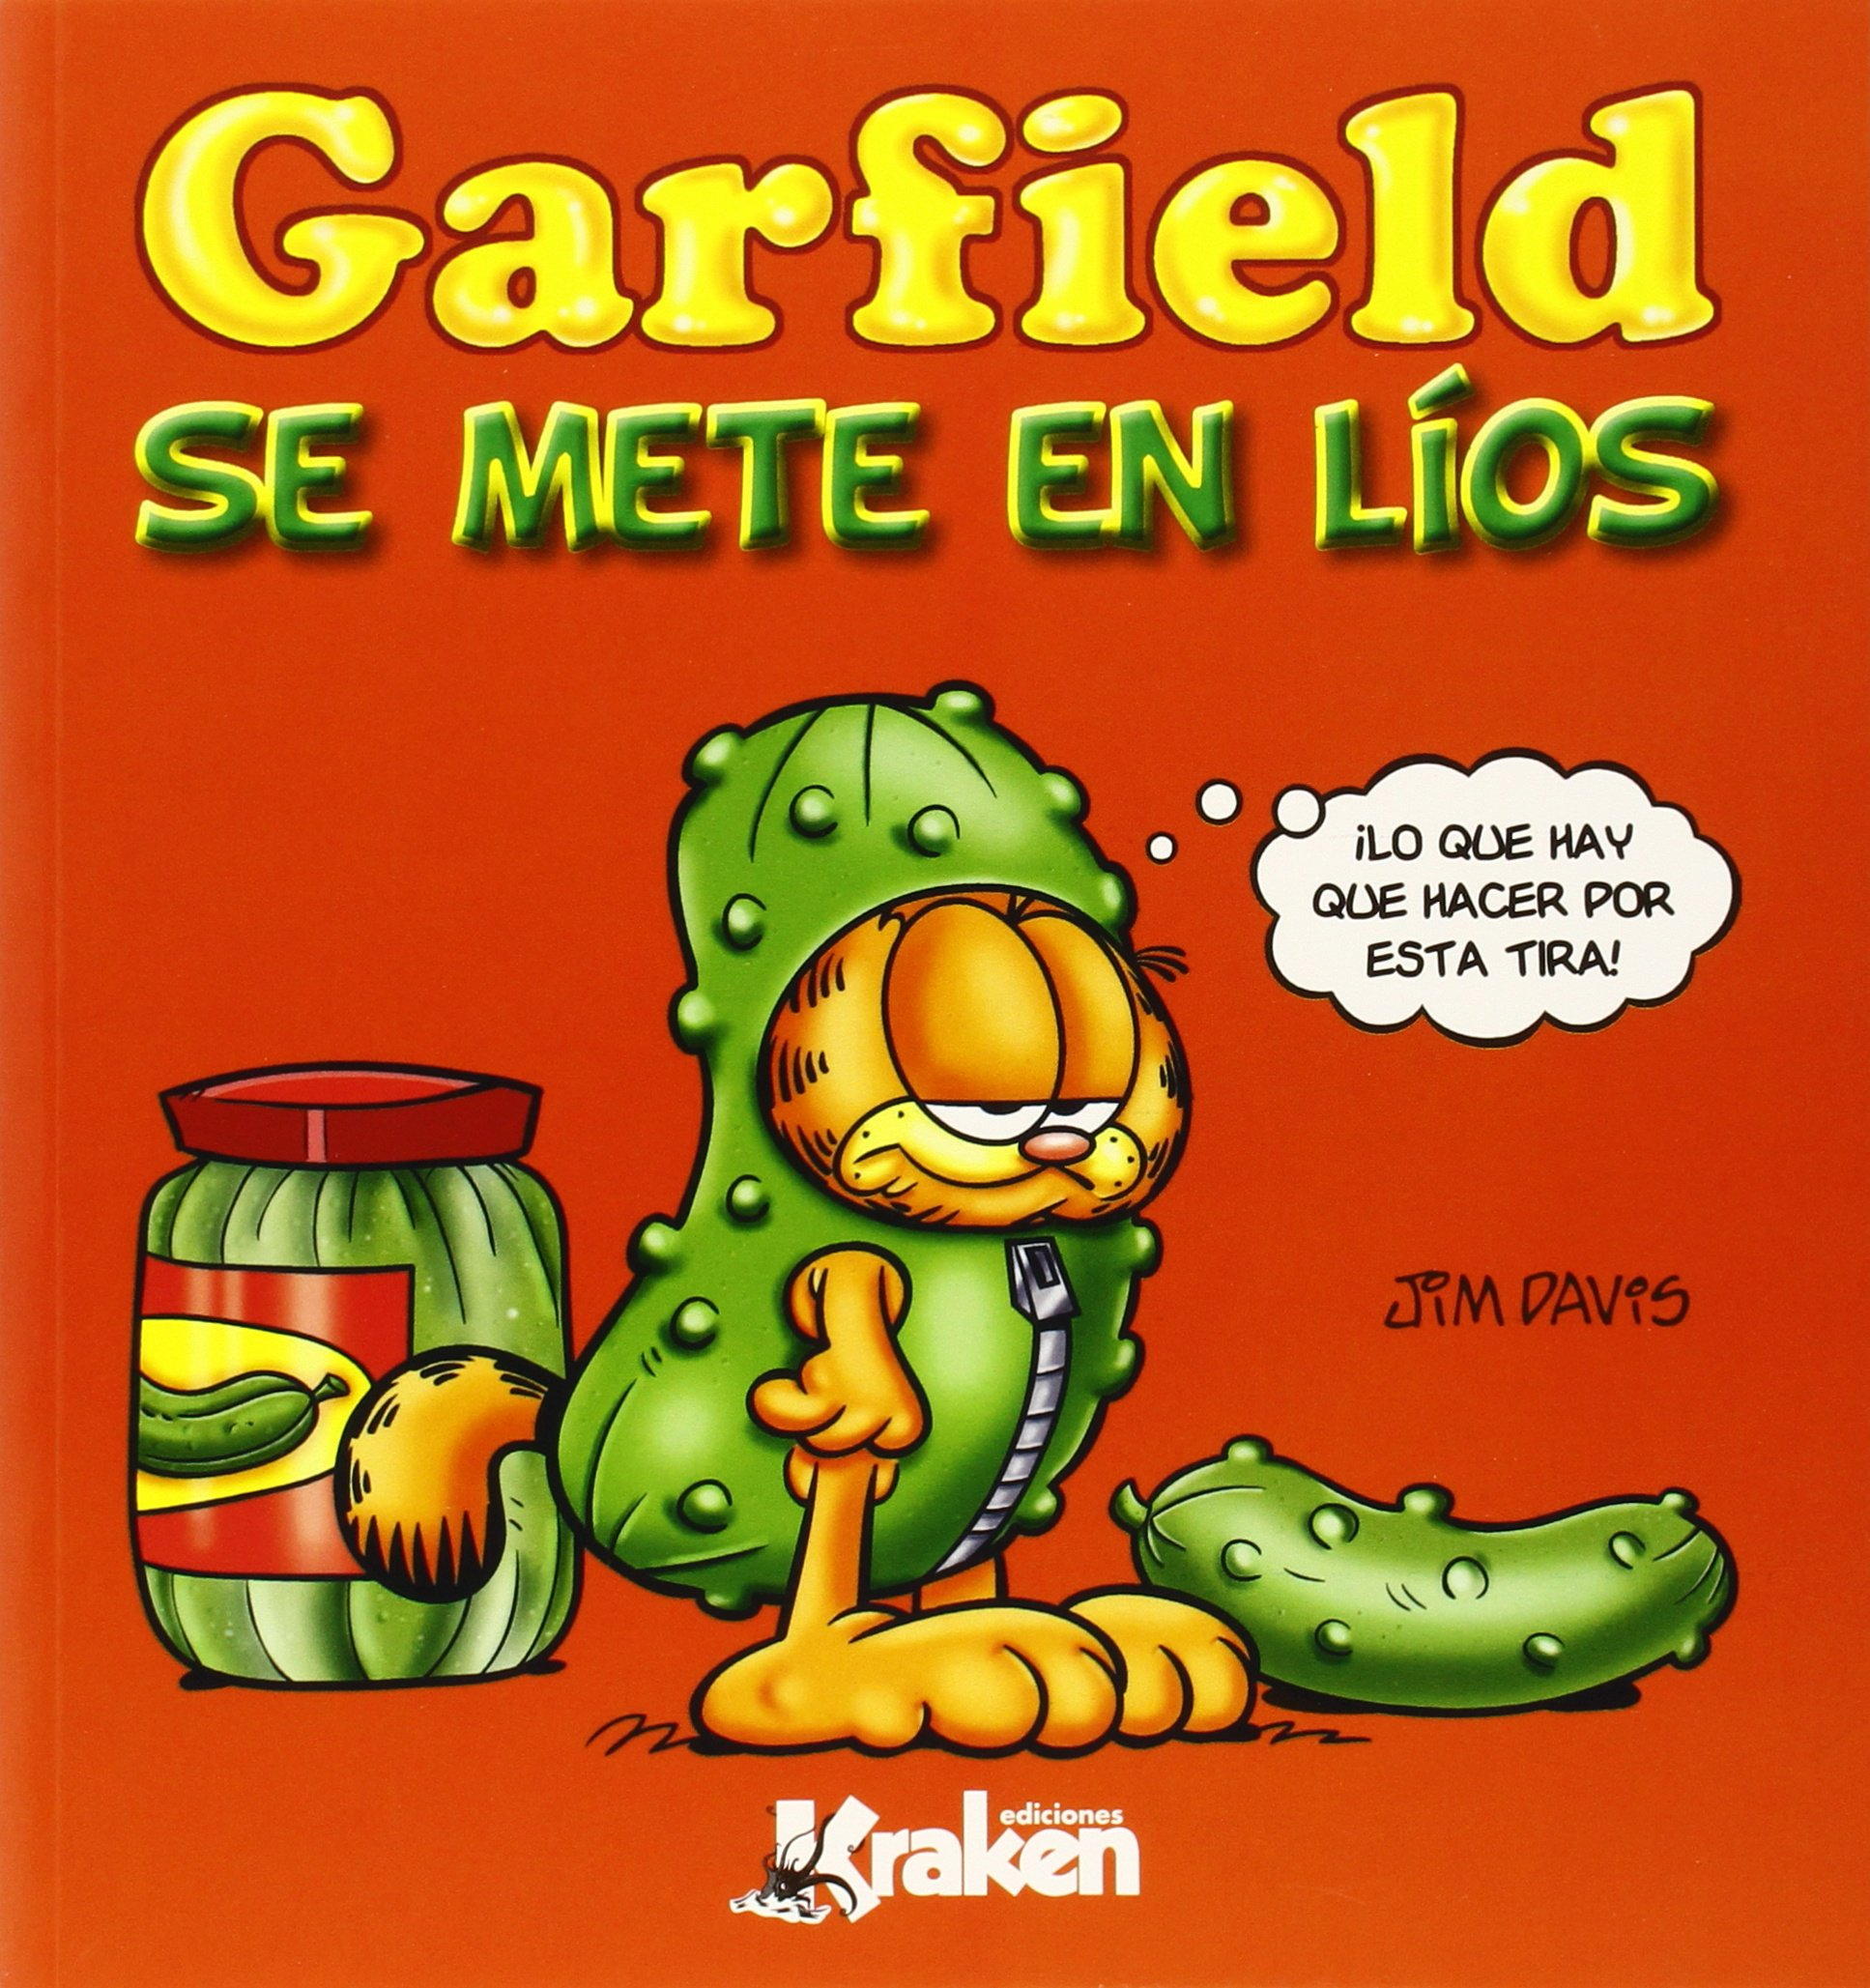 Garfield se mete en líos (Spanish) Paperback – April 23, 2015